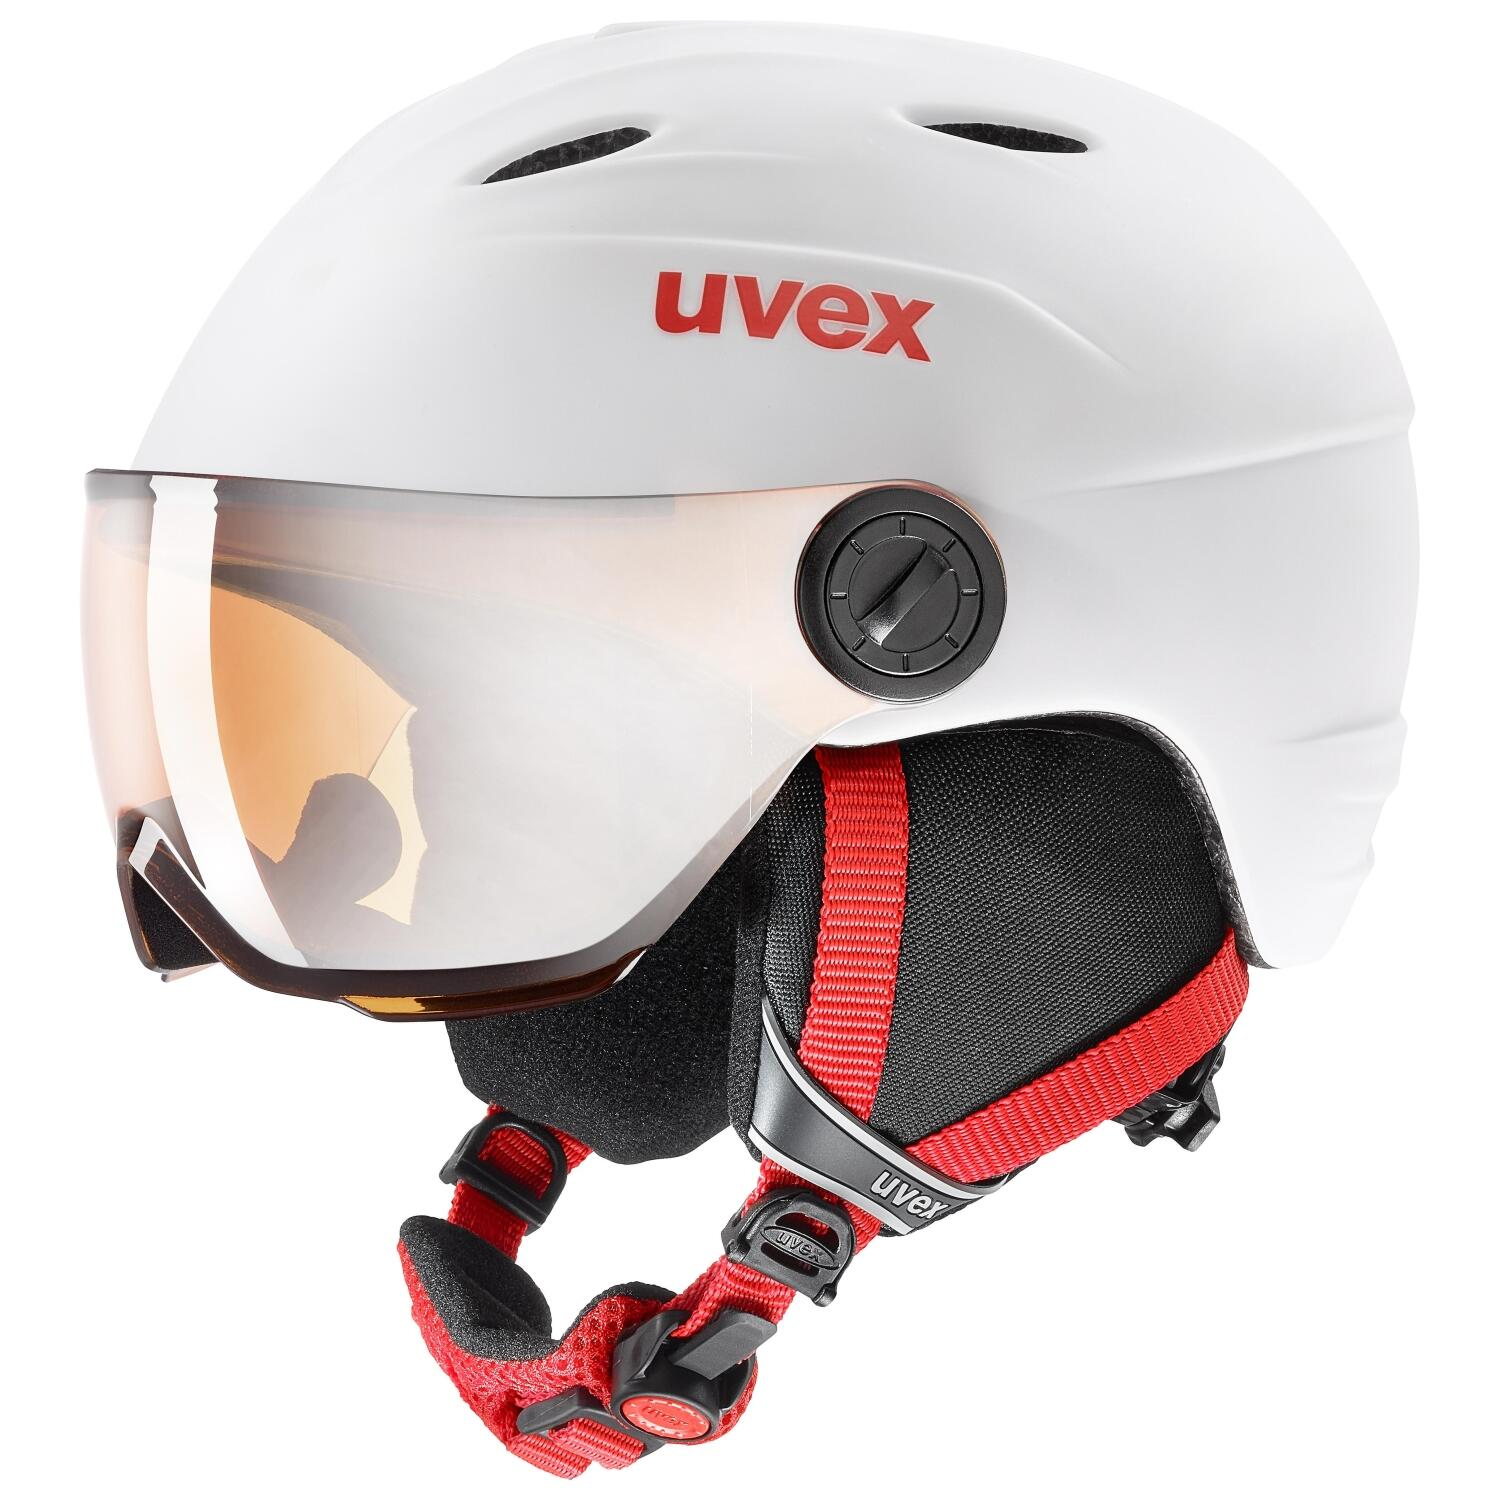 Fürski - uvex Junior Visor Pro Kinderskihelm (Größe 54 56 cm, 13 white red mat) - Onlineshop